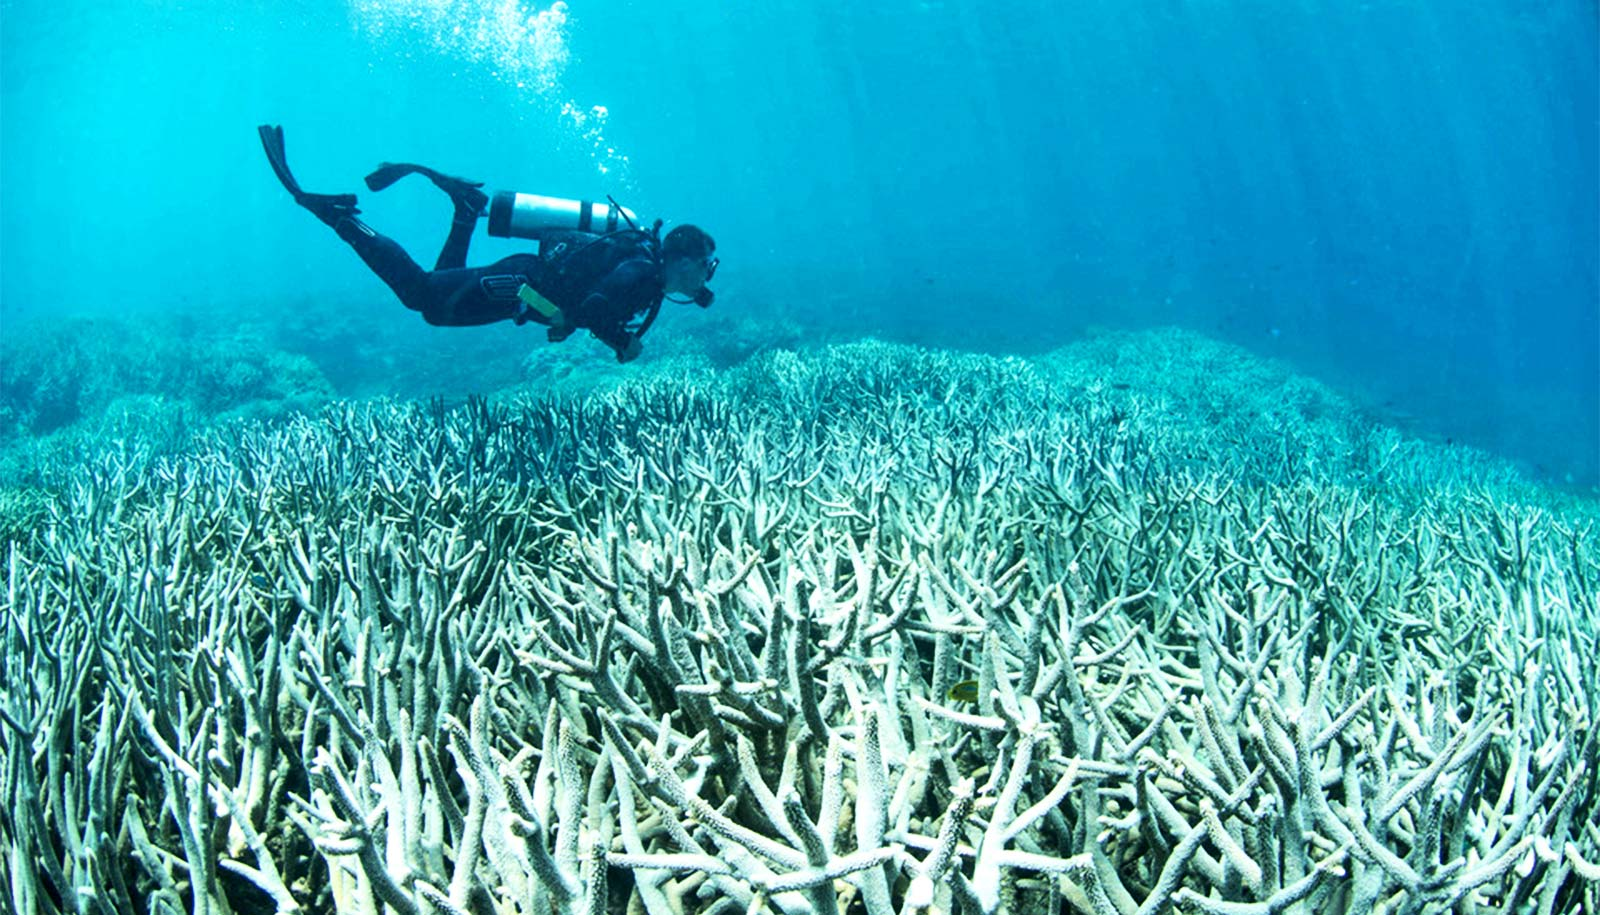 With smart action, hope isn't lost for coral reefs